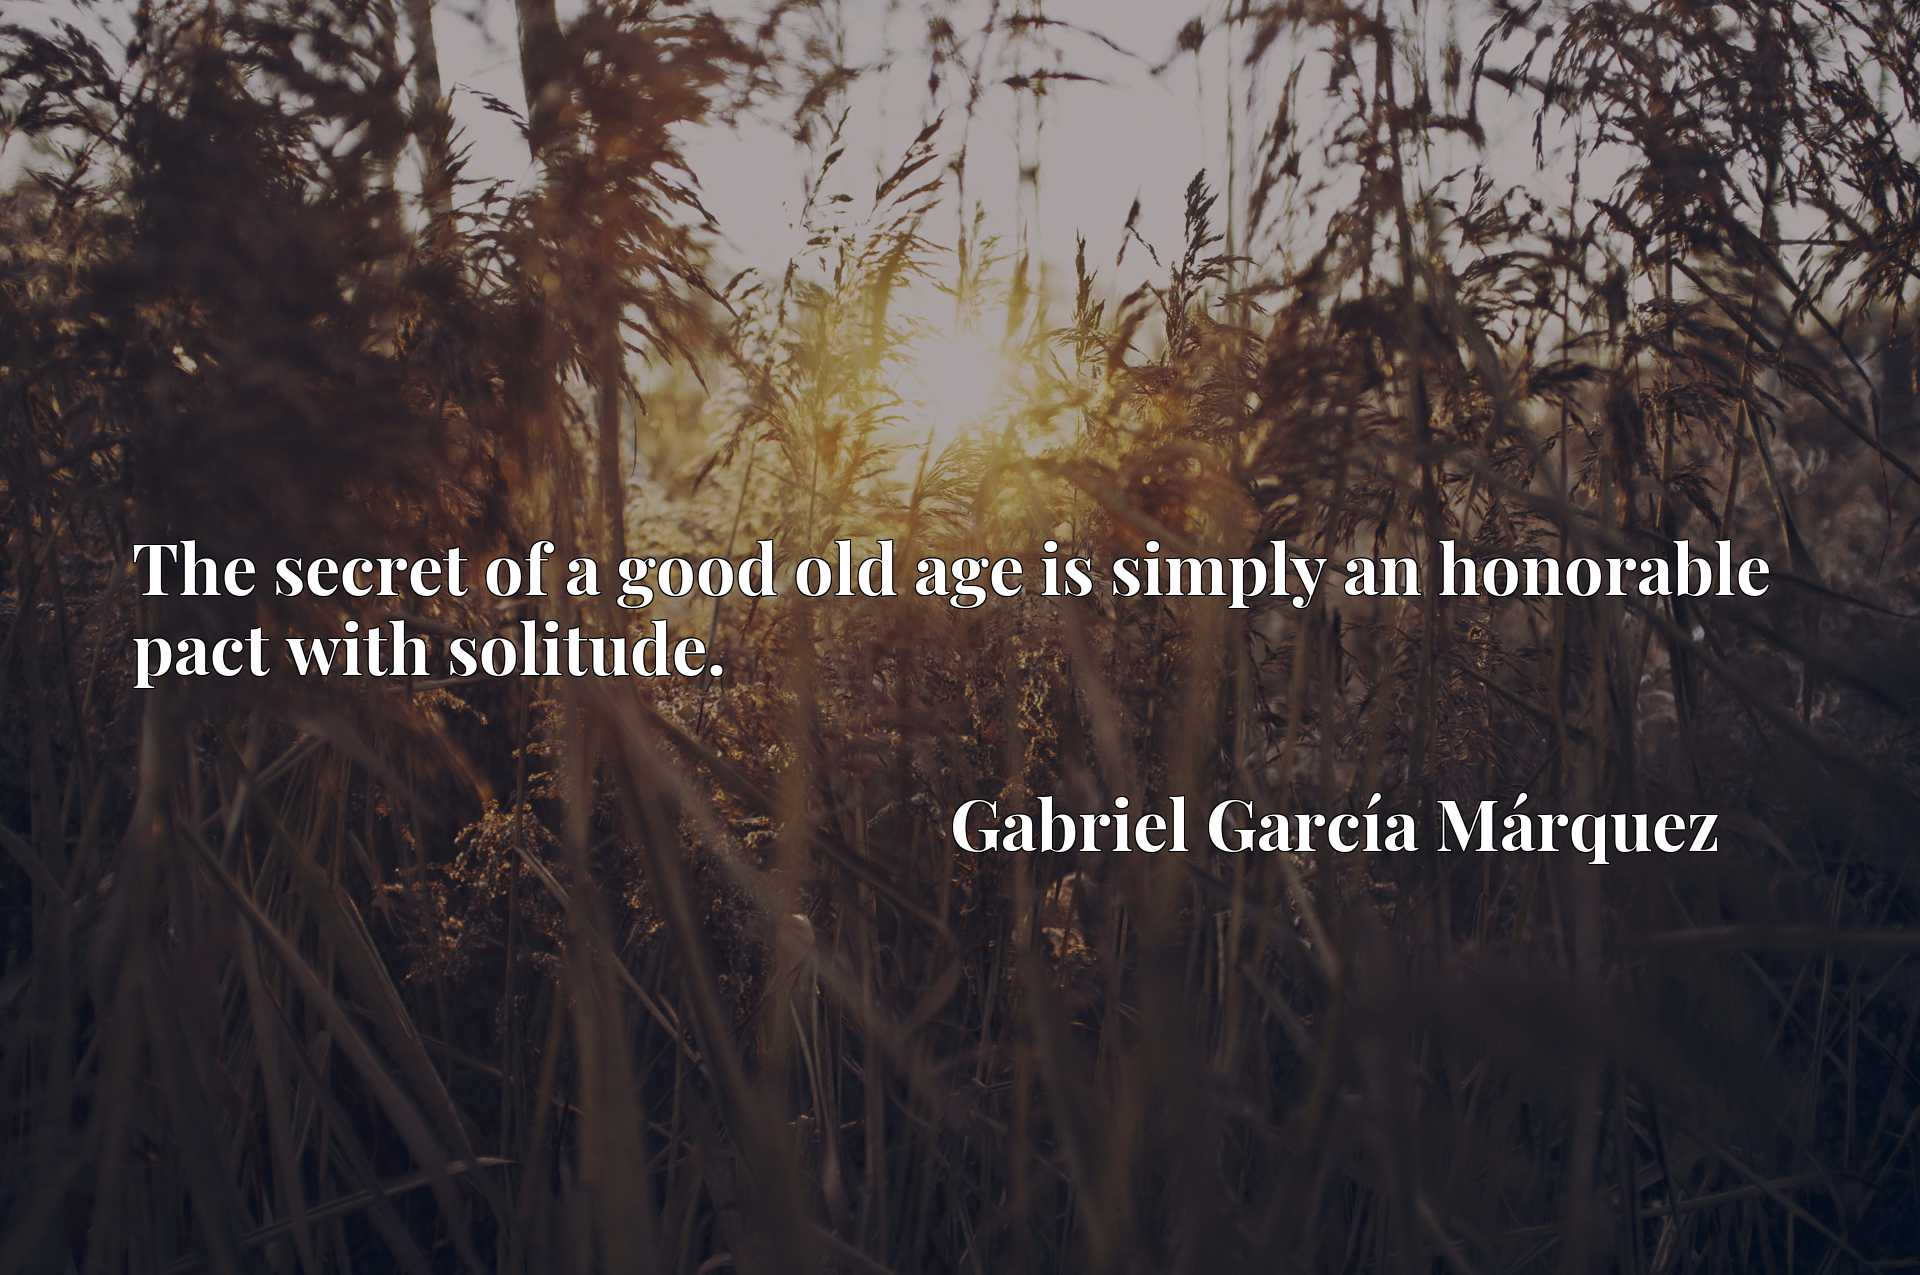 Quote Picture :The secret of a good old age is simply an honorable pact with solitude.